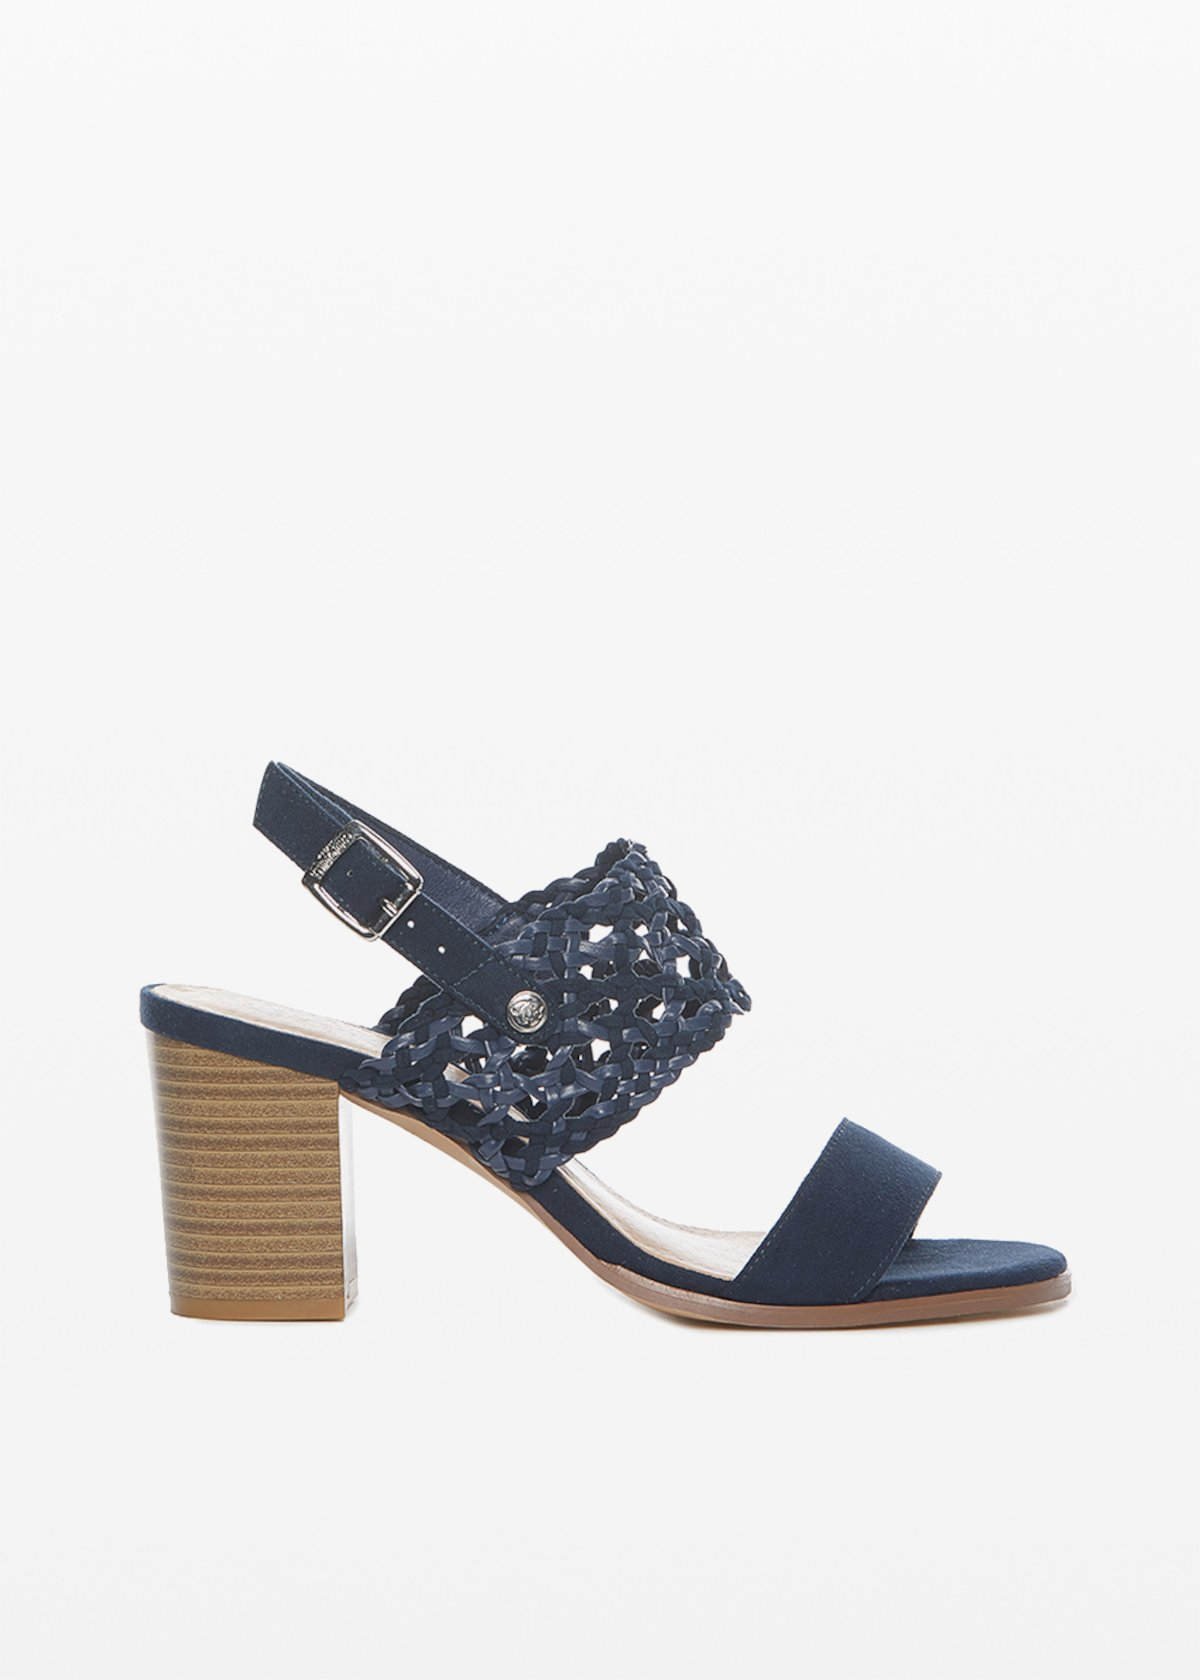 Sandali Saily in ecosuede con fascia intrecciata - Medium Blue - Donna - Immagine categoria